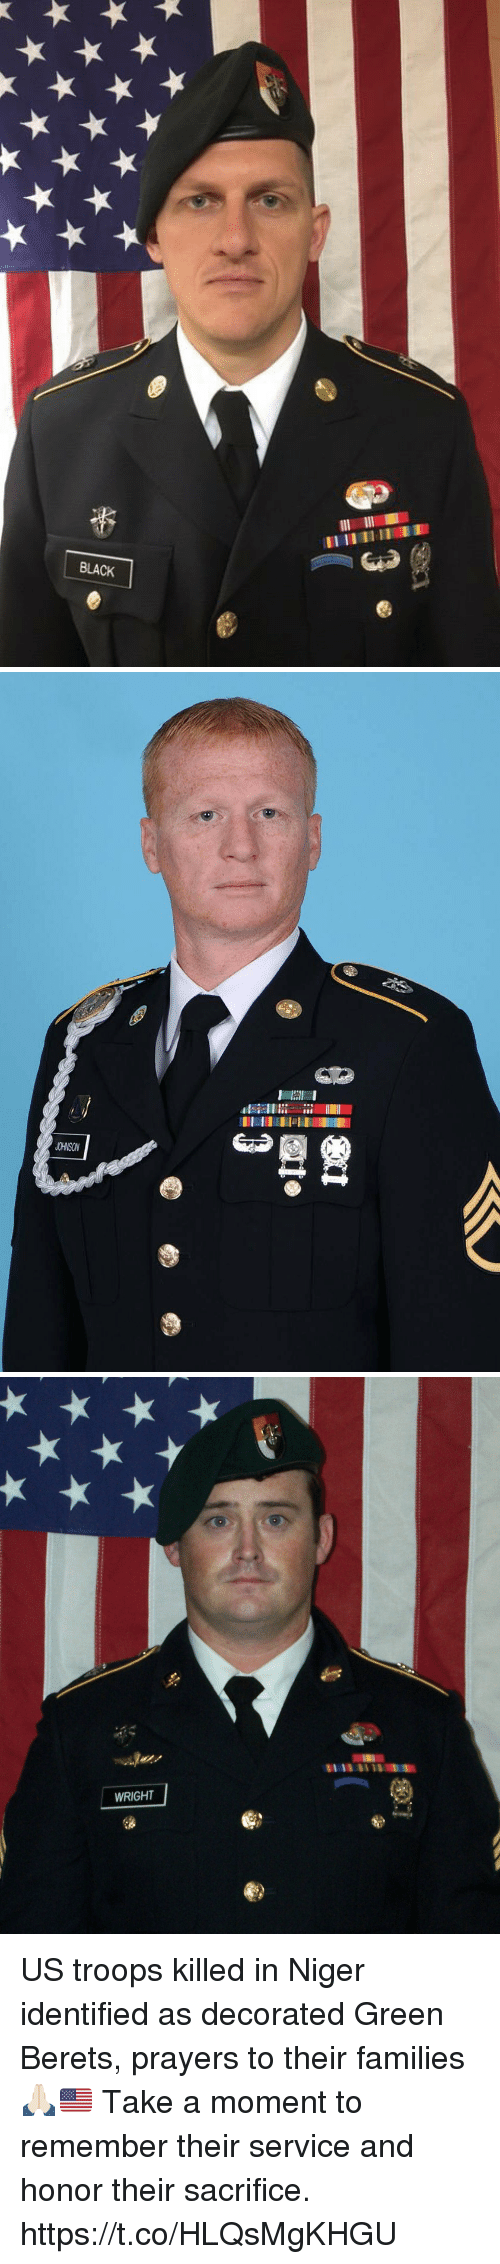 niger: BLACK   12  JOHNSON   WRIGHT US troops killed in Niger identified as decorated Green Berets, prayers to their families 🙏🏻🇺🇸 Take a moment to remember their service and honor their sacrifice. https://t.co/HLQsMgKHGU